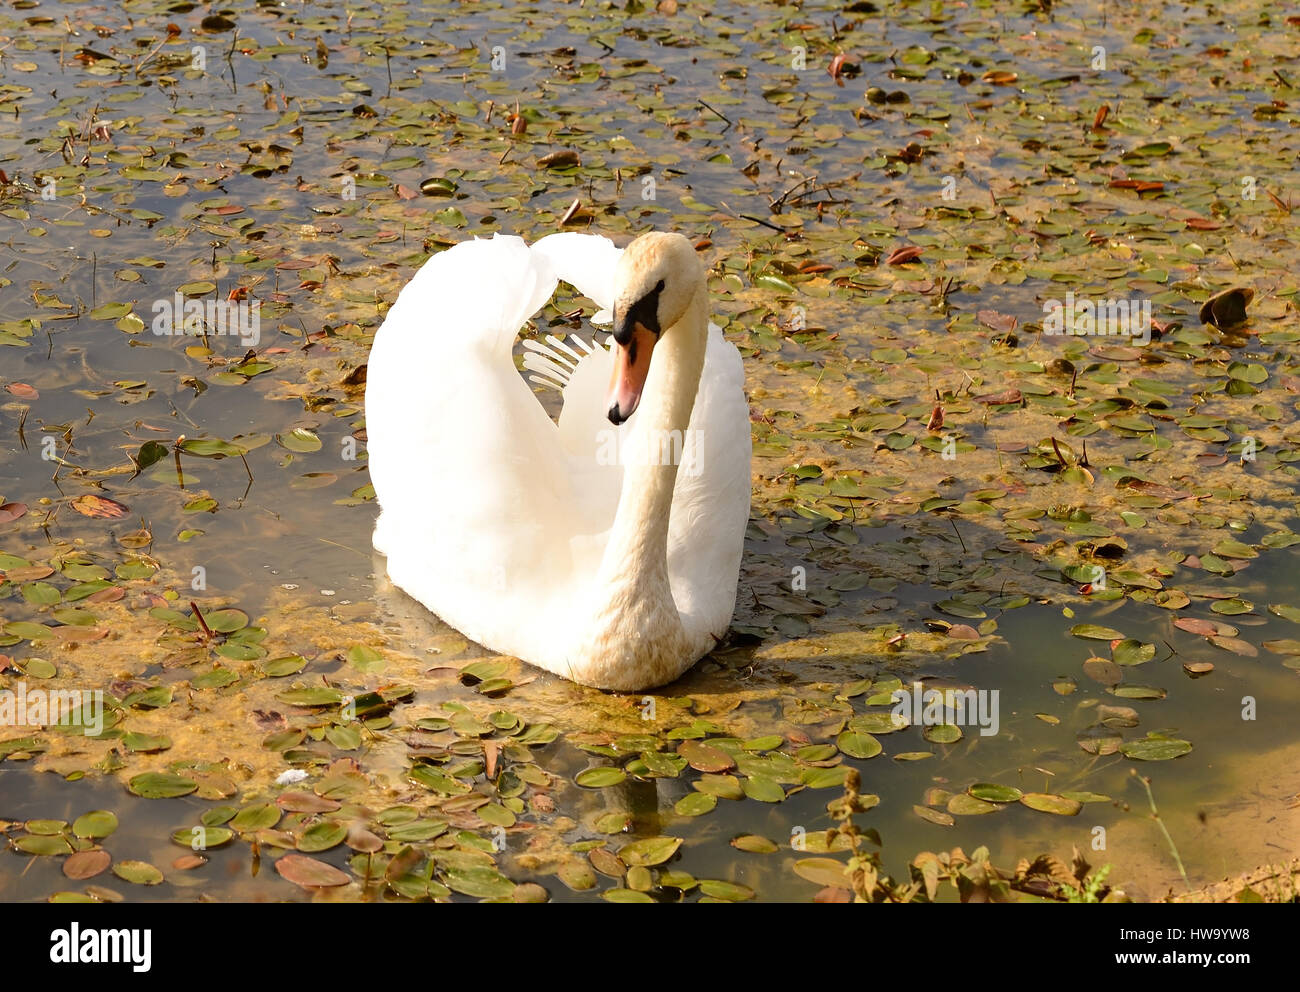 A mute swan on an inland waterway. - Stock Image